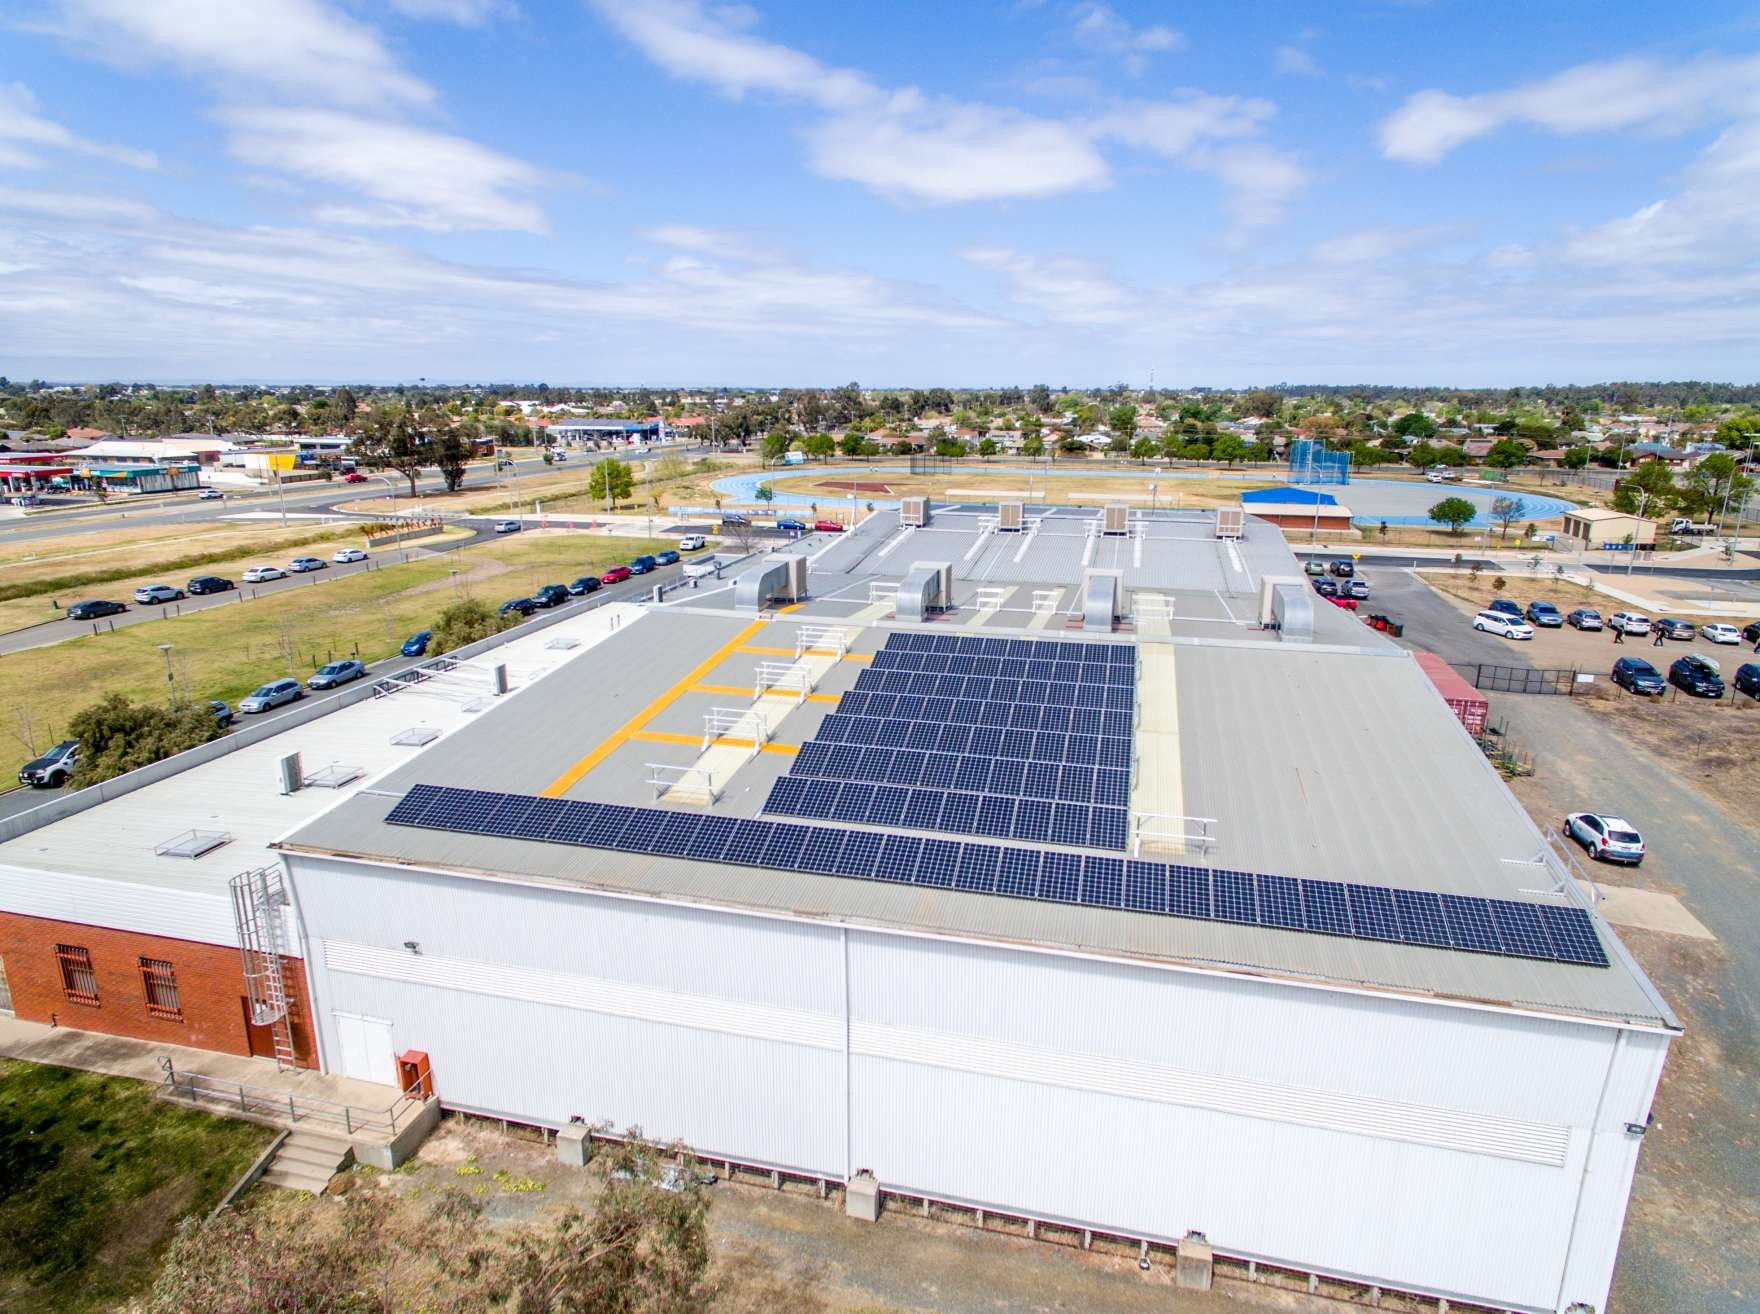 Solar panels installed at the Shepparton Sports Stadium in 2018